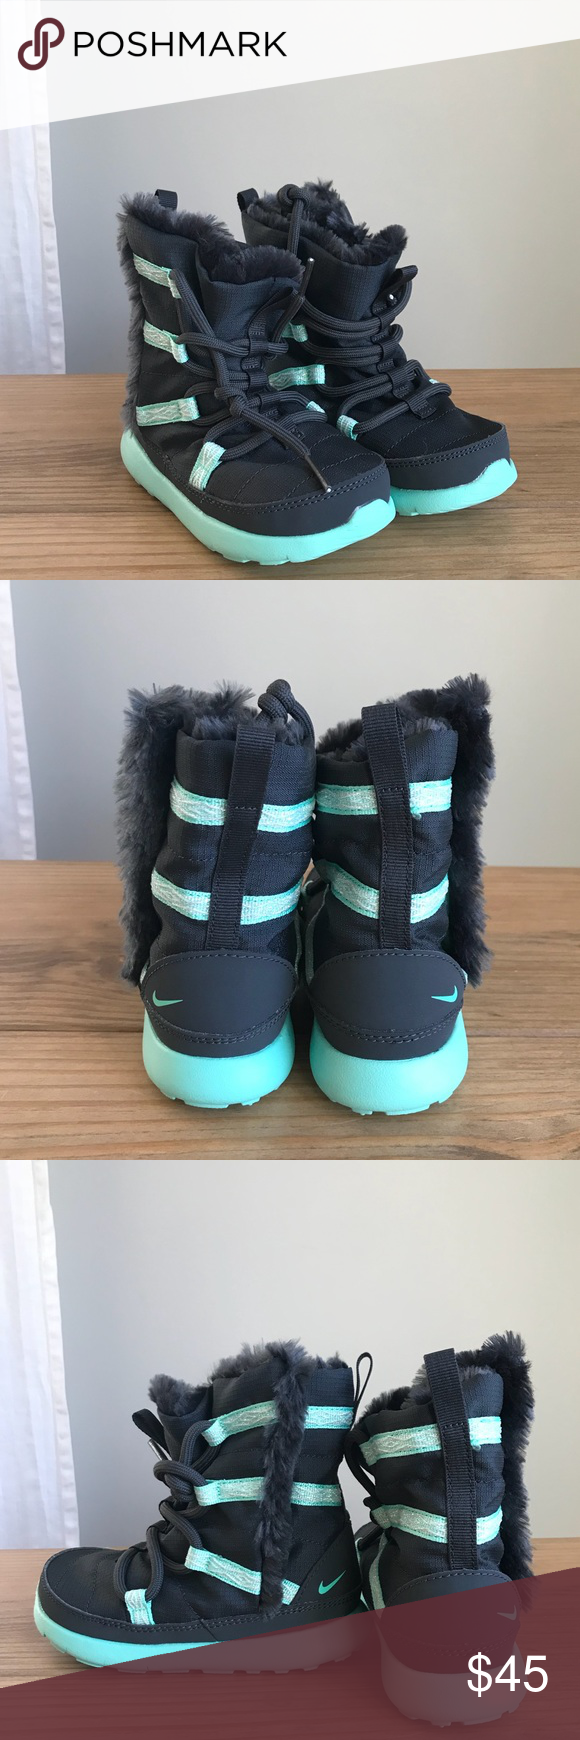 7bc43574eb94 NWOT  Nike Roshe One Hi sneakerboot toddler size 8 NWOT  Nike Roshe One Hi  sneakerboot toddler size 8 color is anthracite green glow.